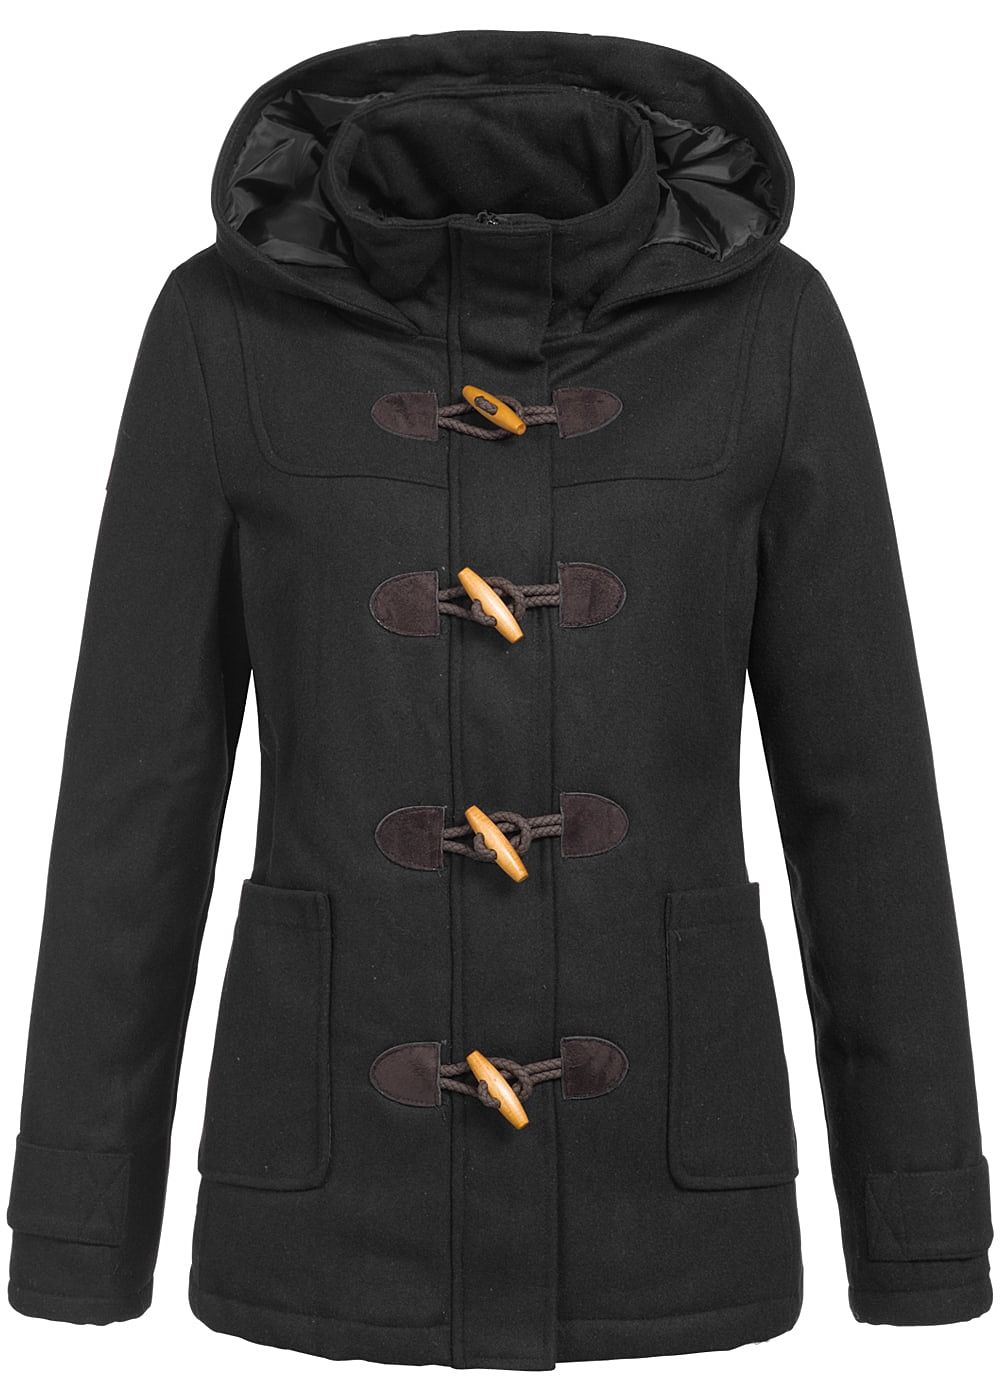 seventyseven lifestyle damen winter parka kapuze 2 taschen. Black Bedroom Furniture Sets. Home Design Ideas